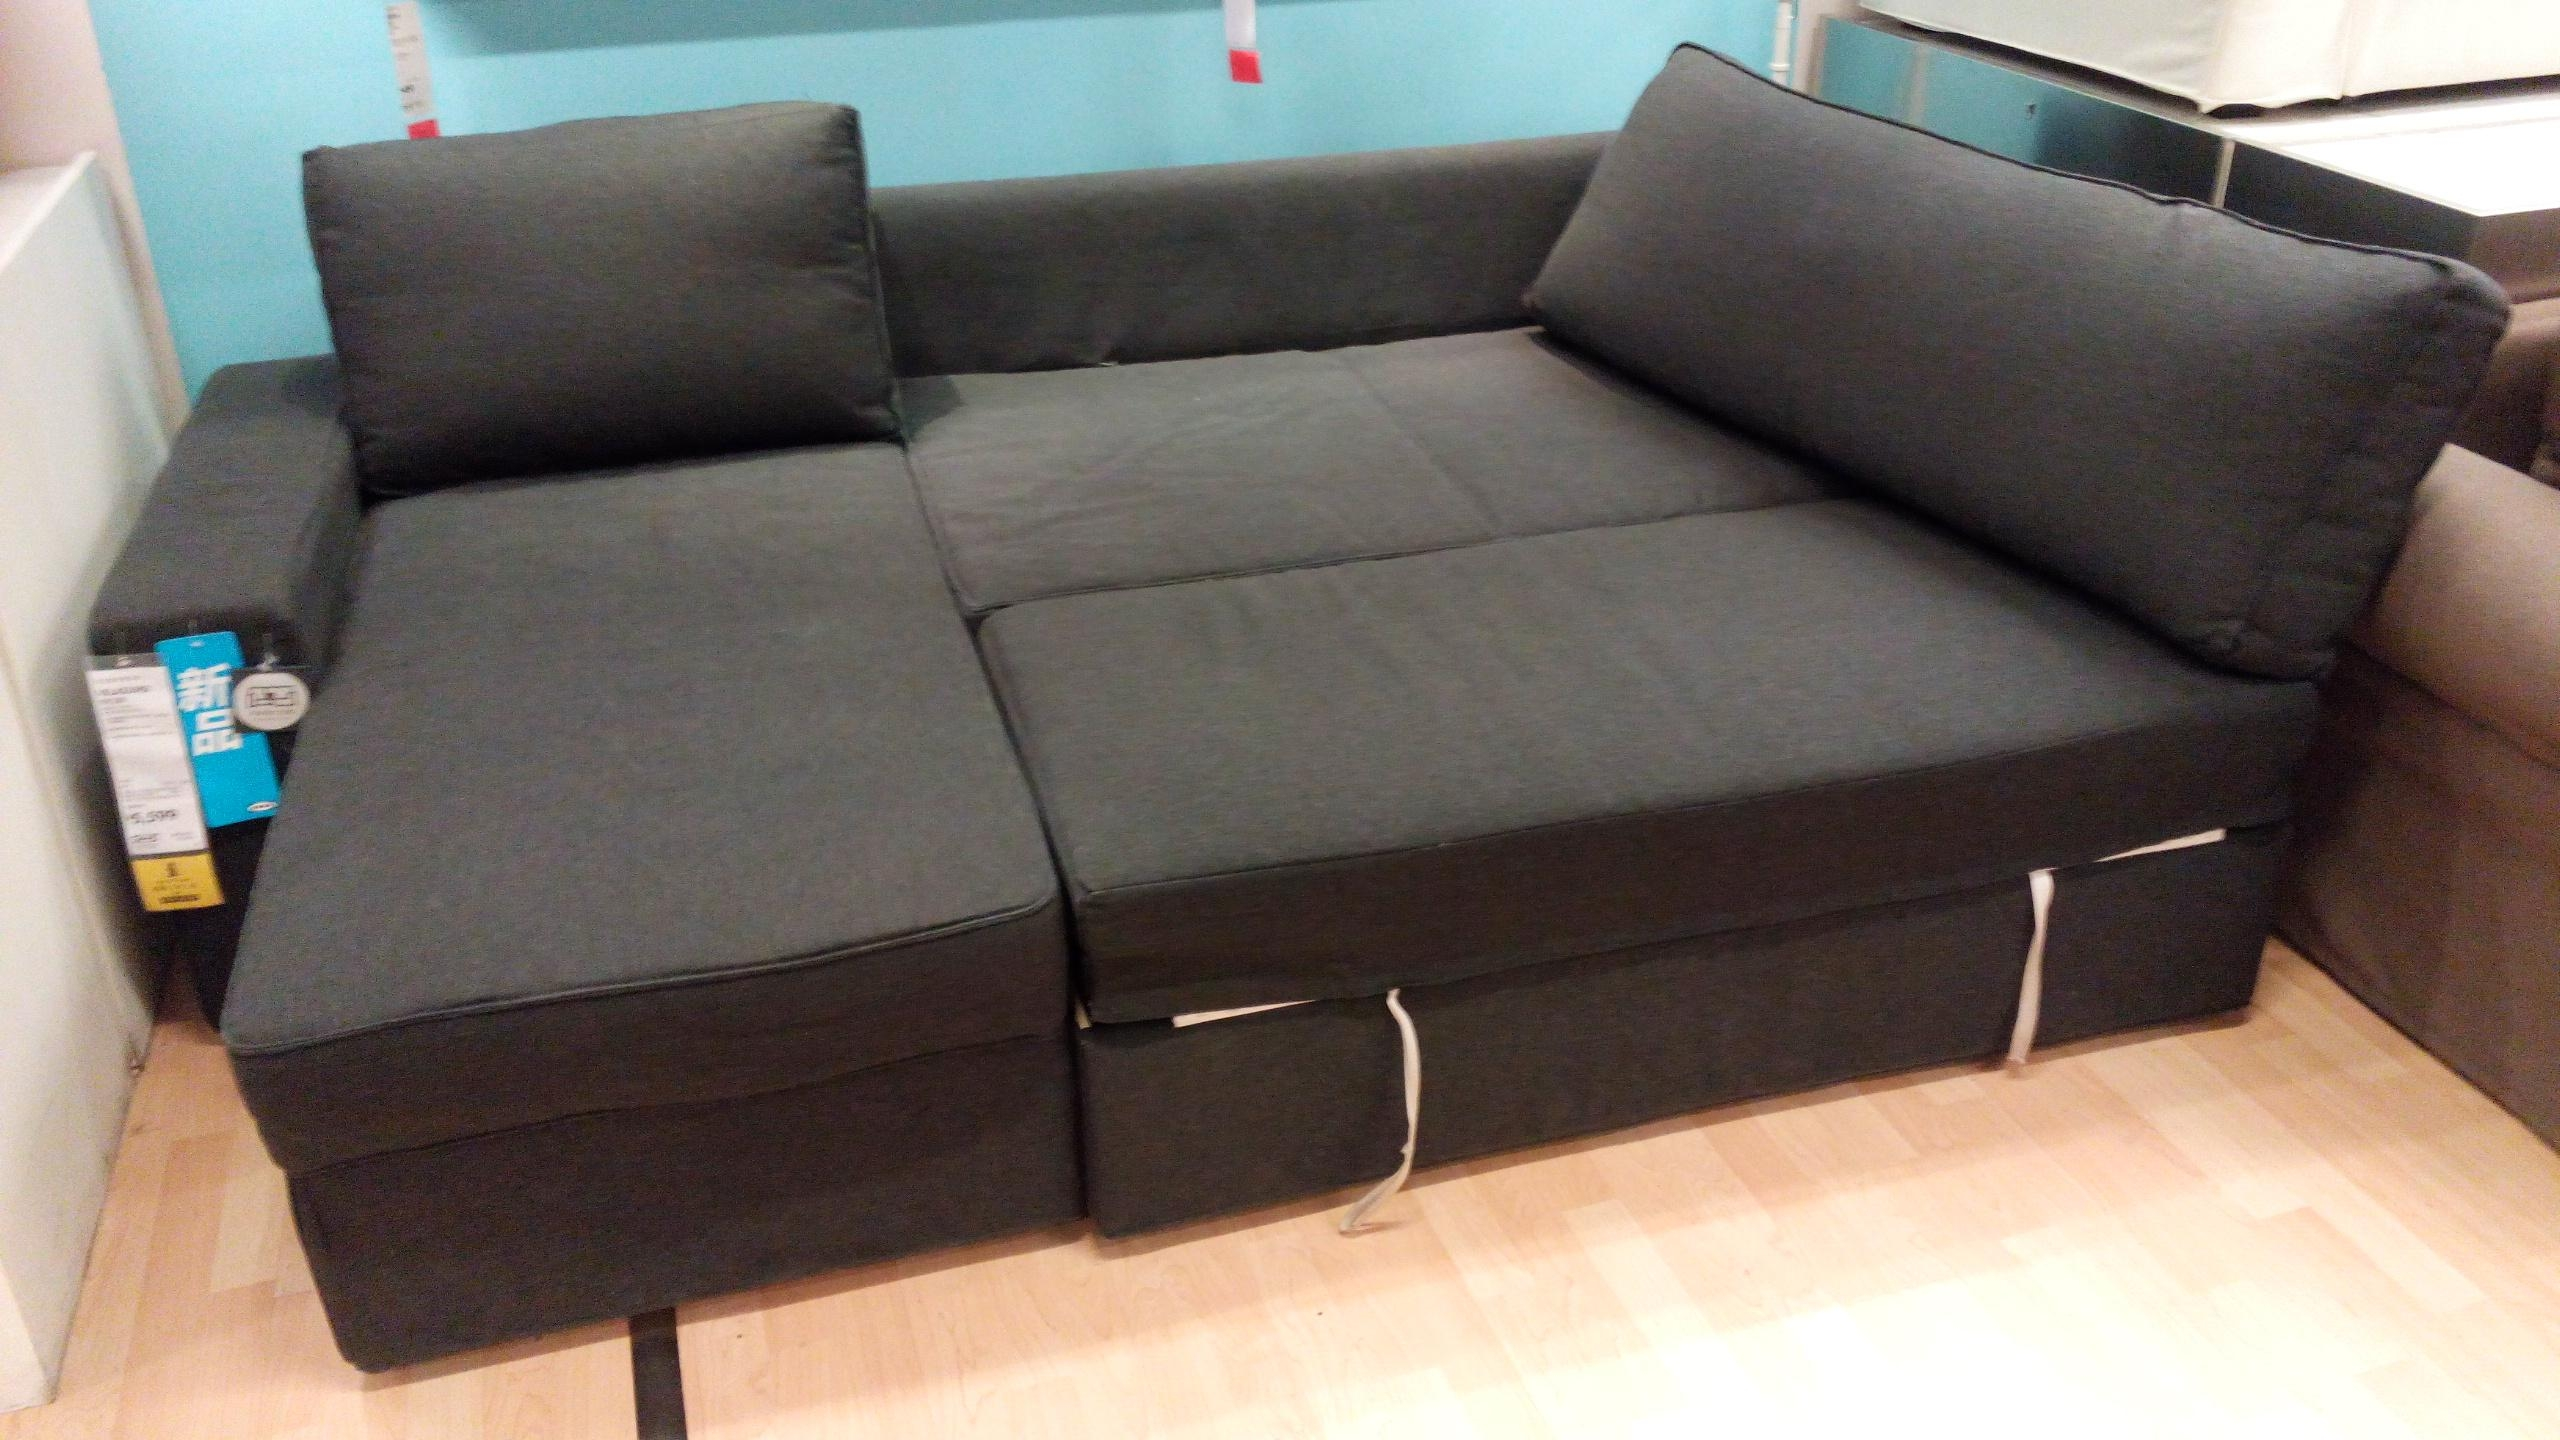 Furniture: Big Choice Of Styles And Colors Futon Beds Ikea For Intended For Ikea Sleeper Sofa Sectional (View 2 of 20)